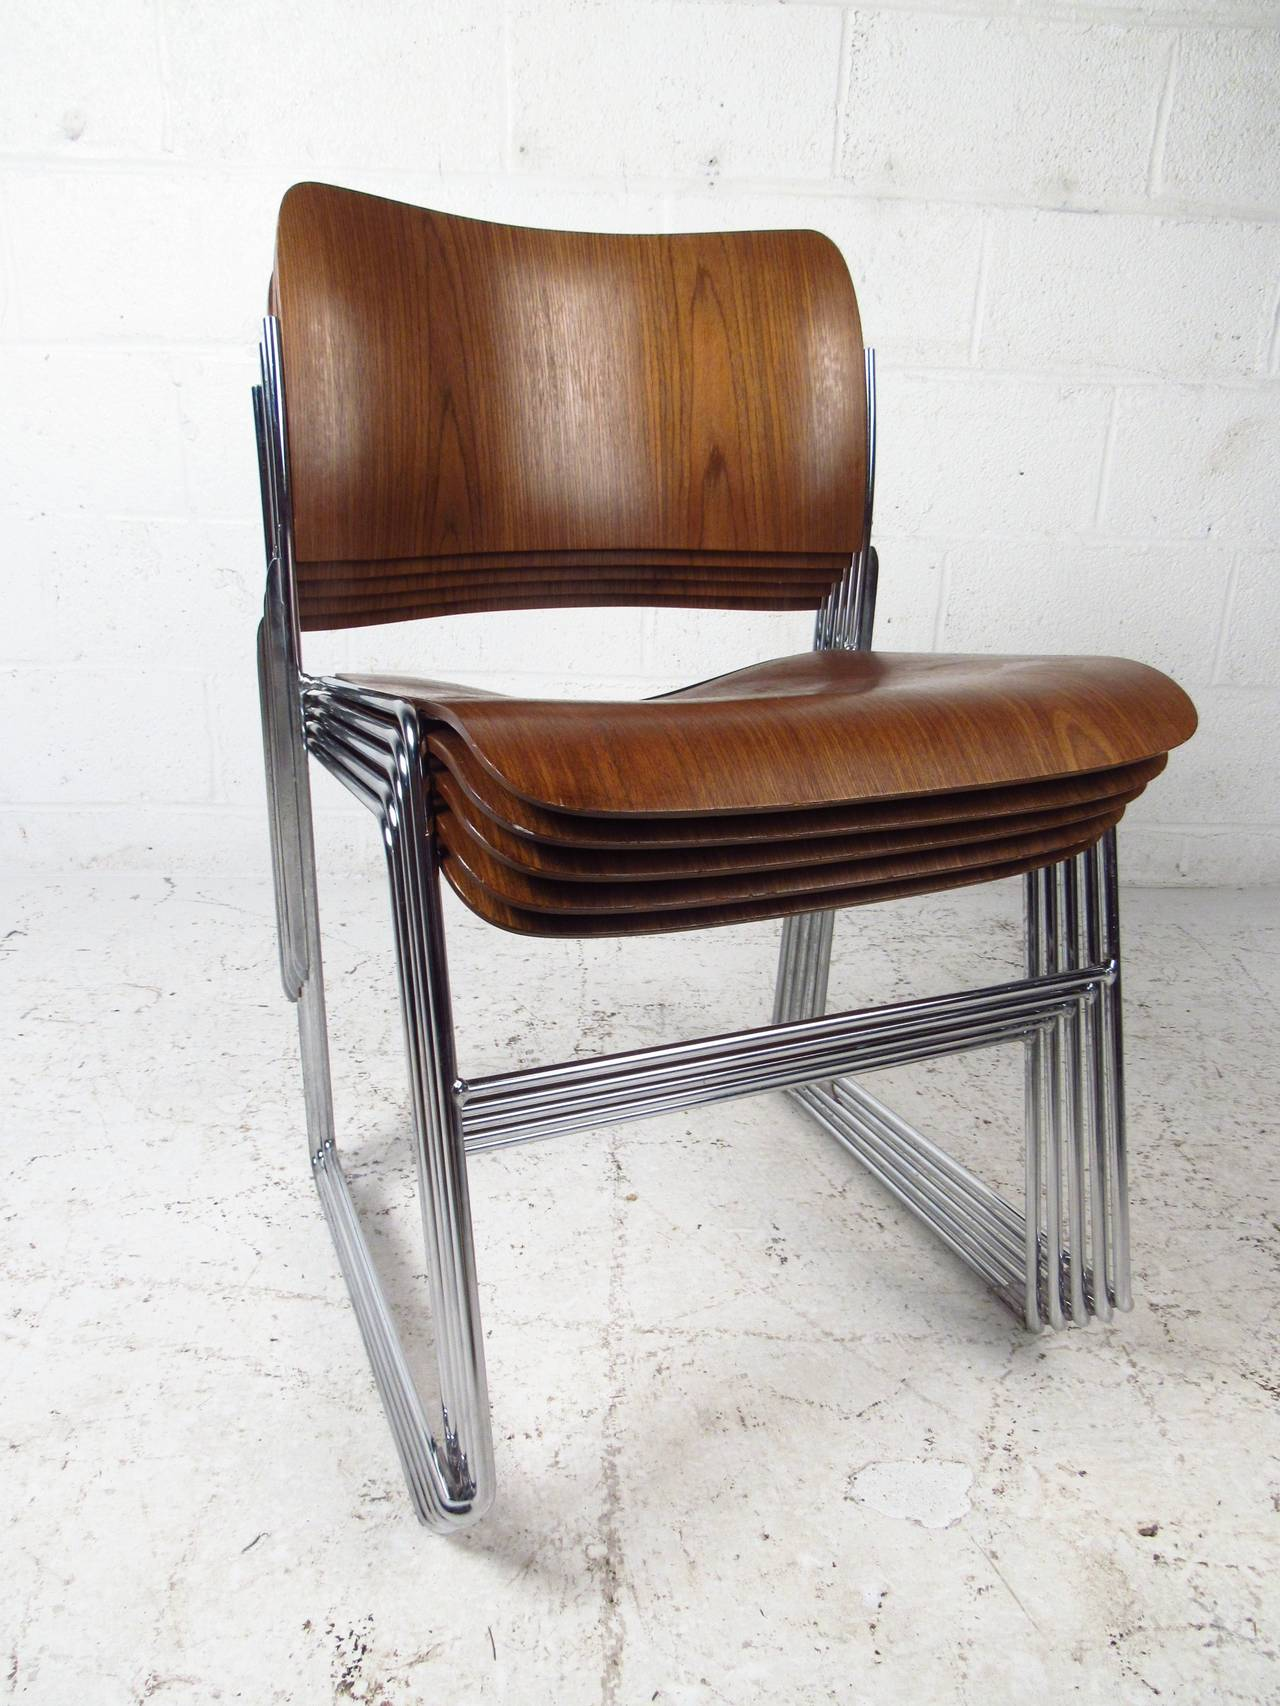 david rowland metal chair farmhouse style cushions set of midcentury 40 4 stackable chairs by